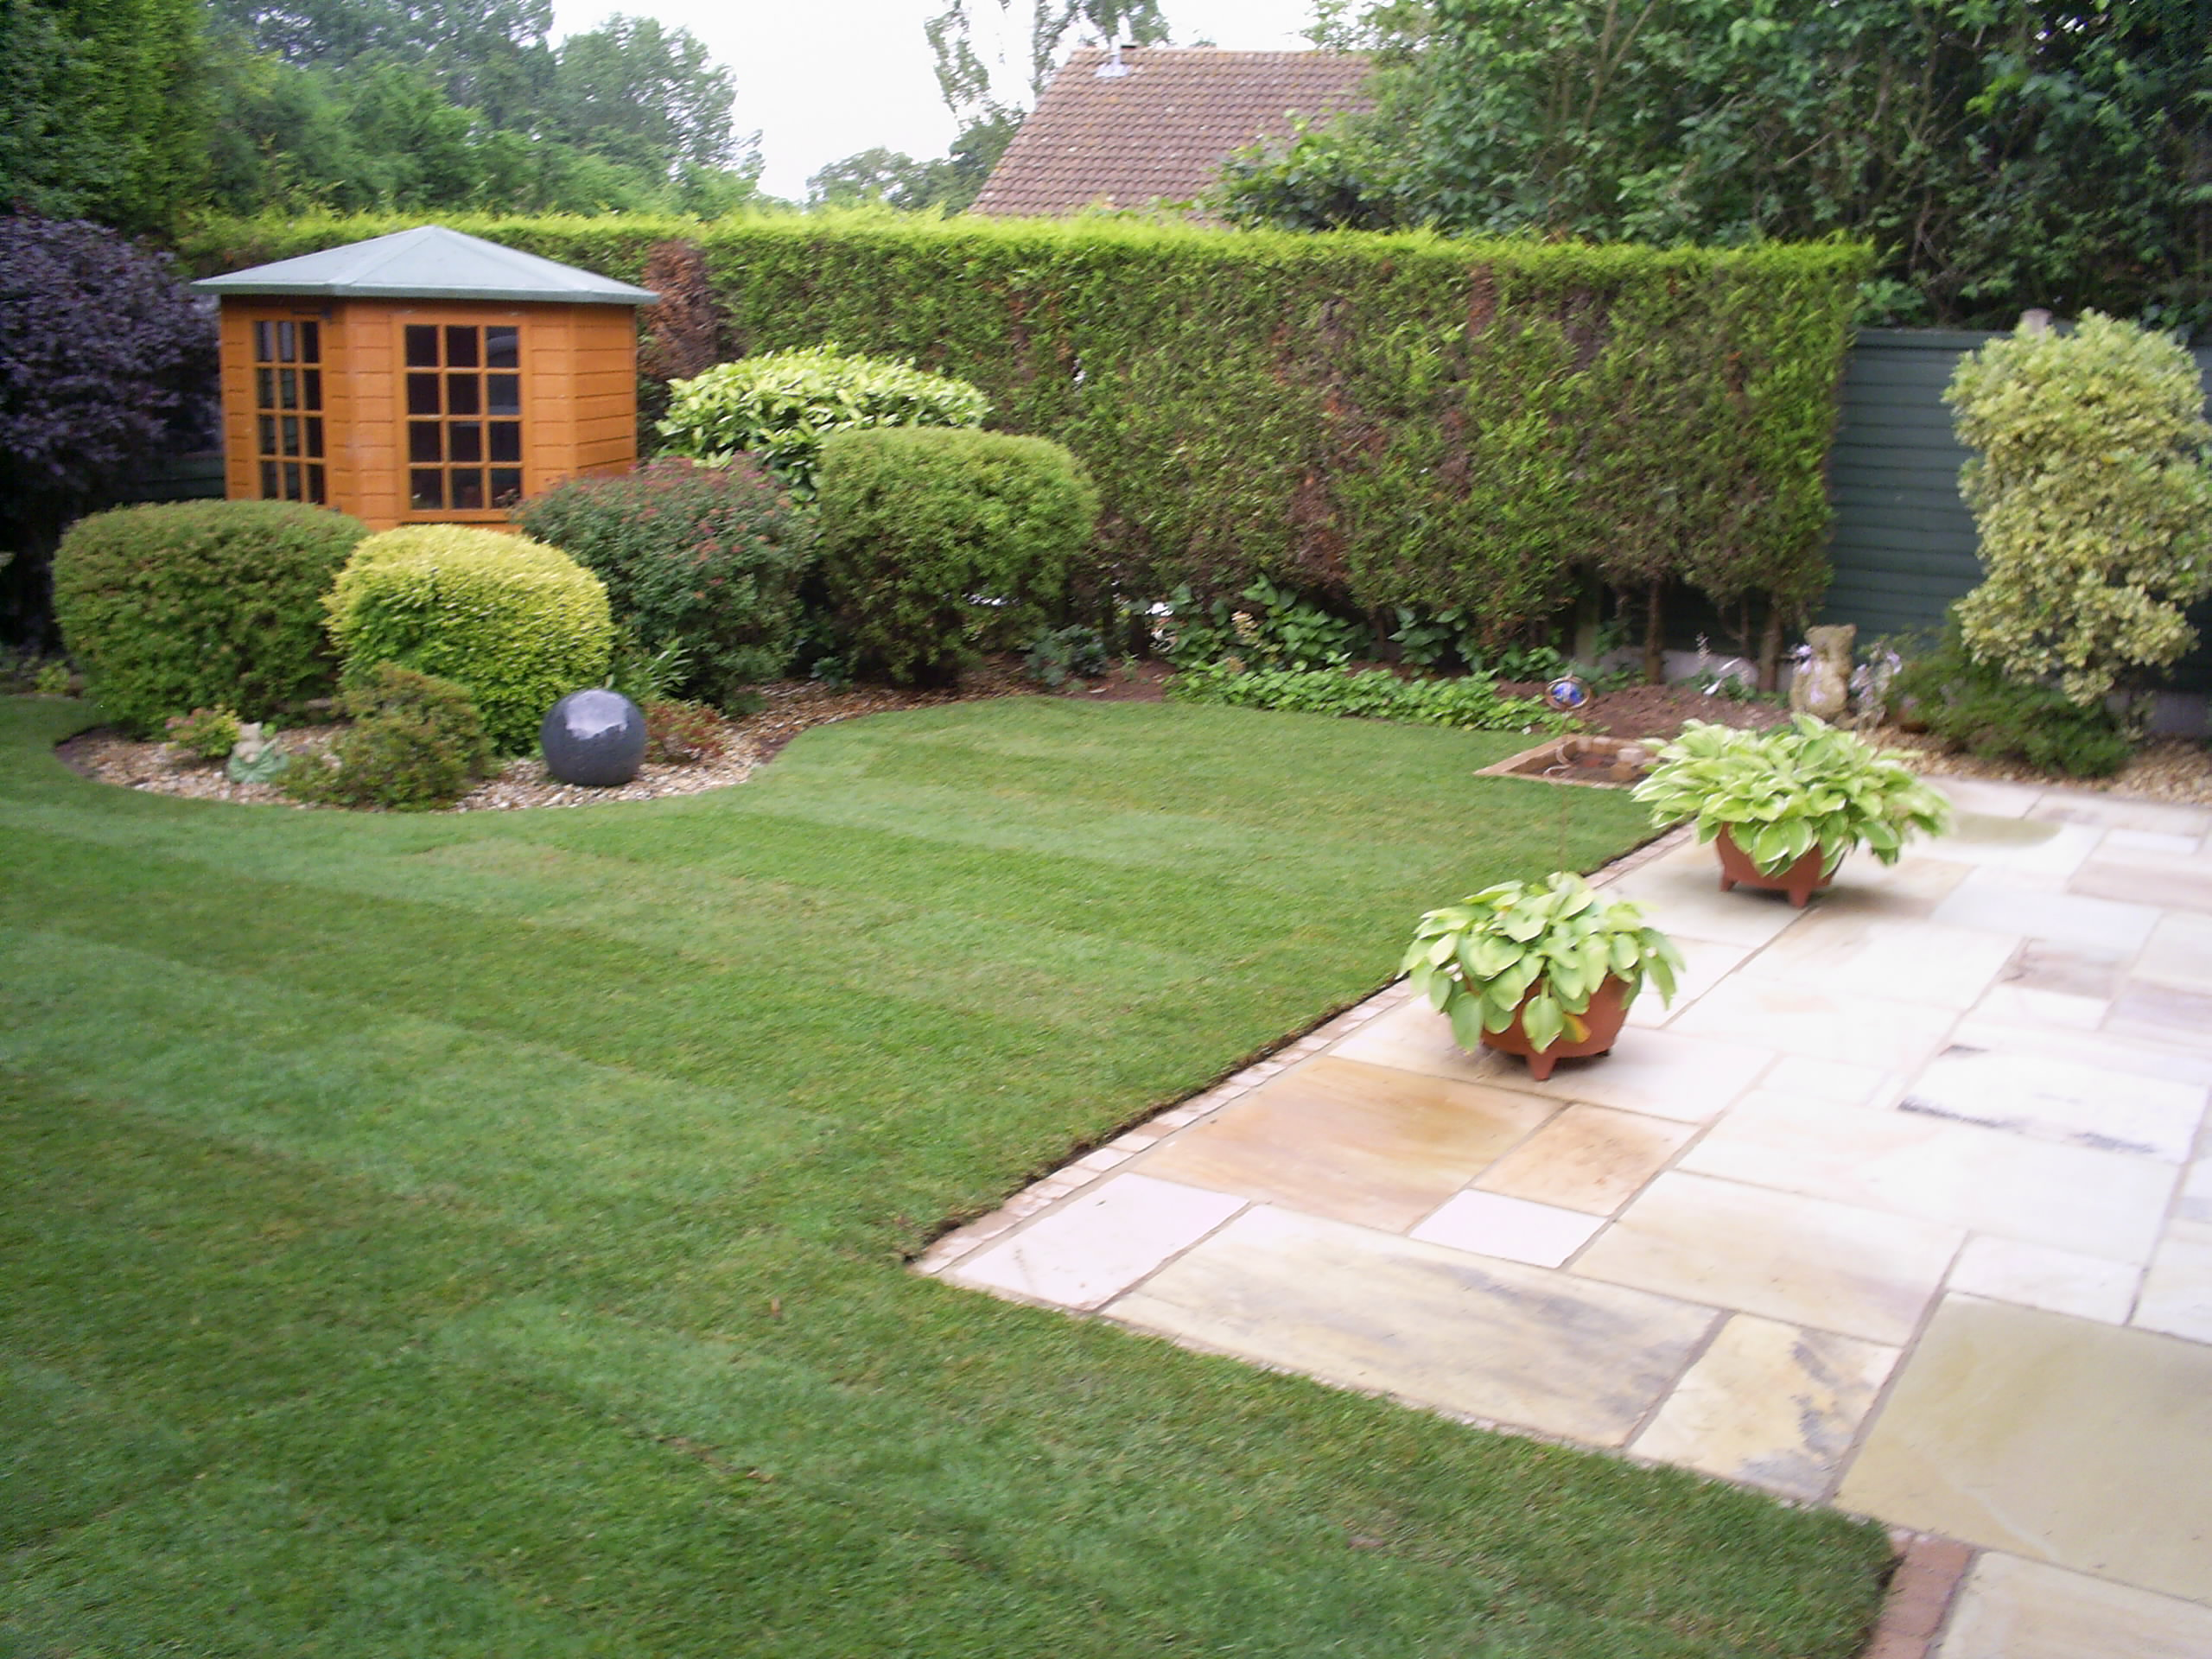 Dixons landscapes lawn and patio dixons landscapes Yard and garden